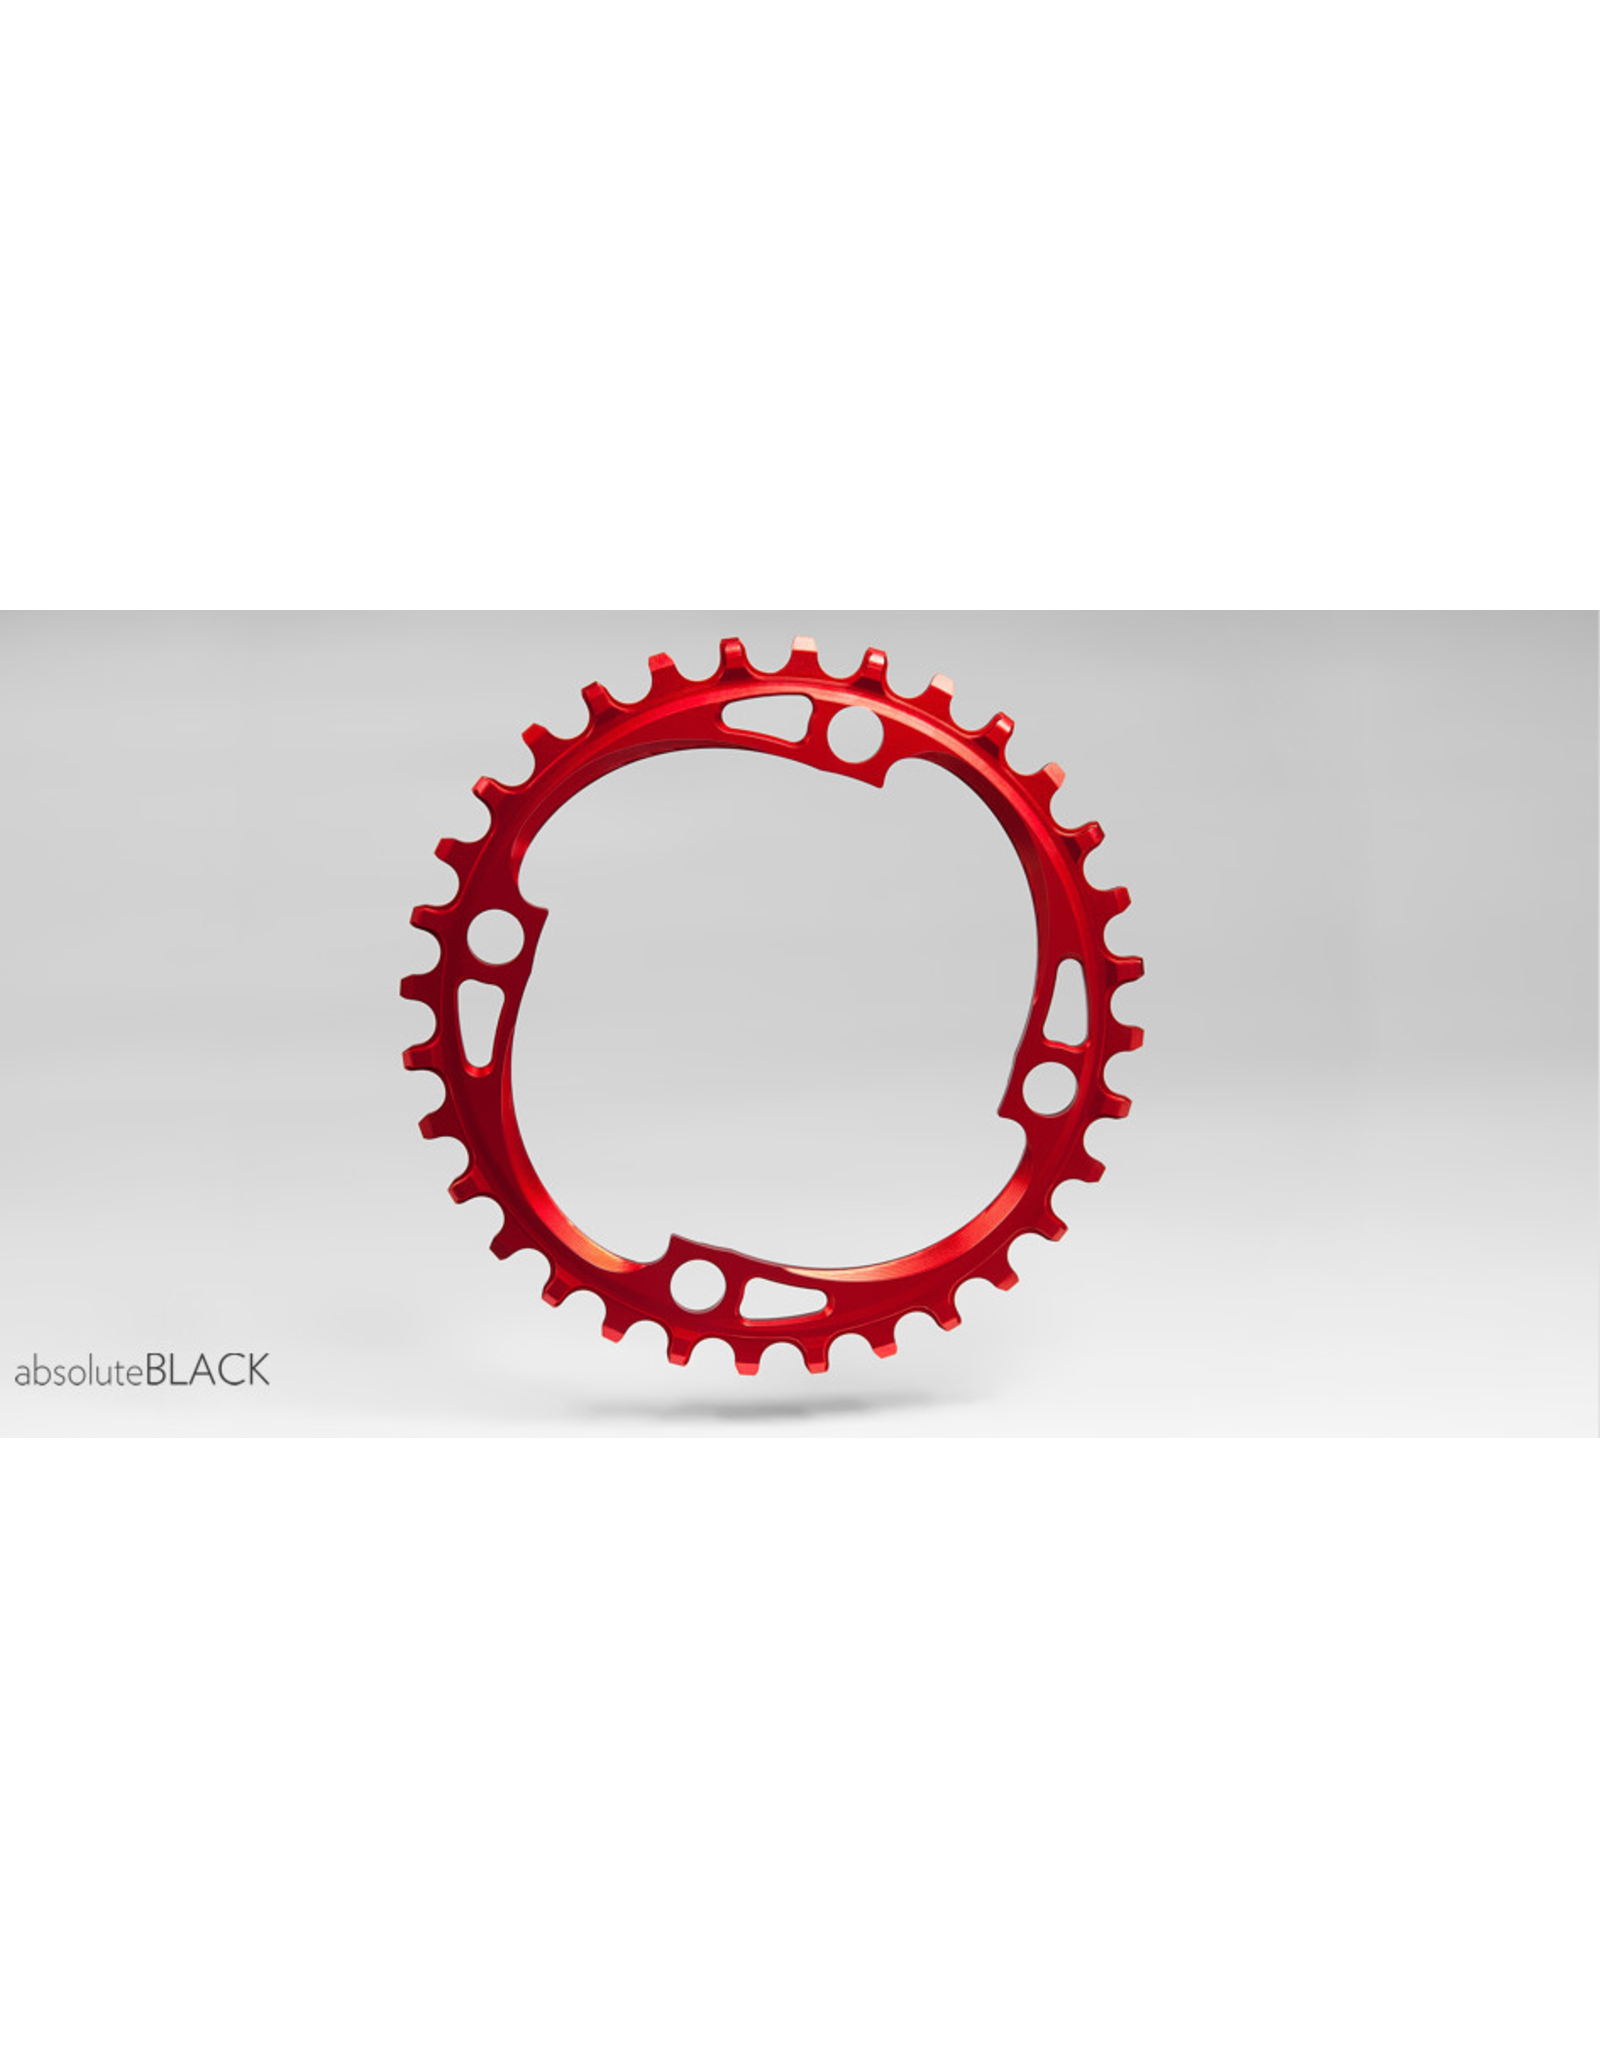 ABSOLUTE BLACK CHAINRING ABSOLUTE BLACK 4 BOLT 104 X 34T RED